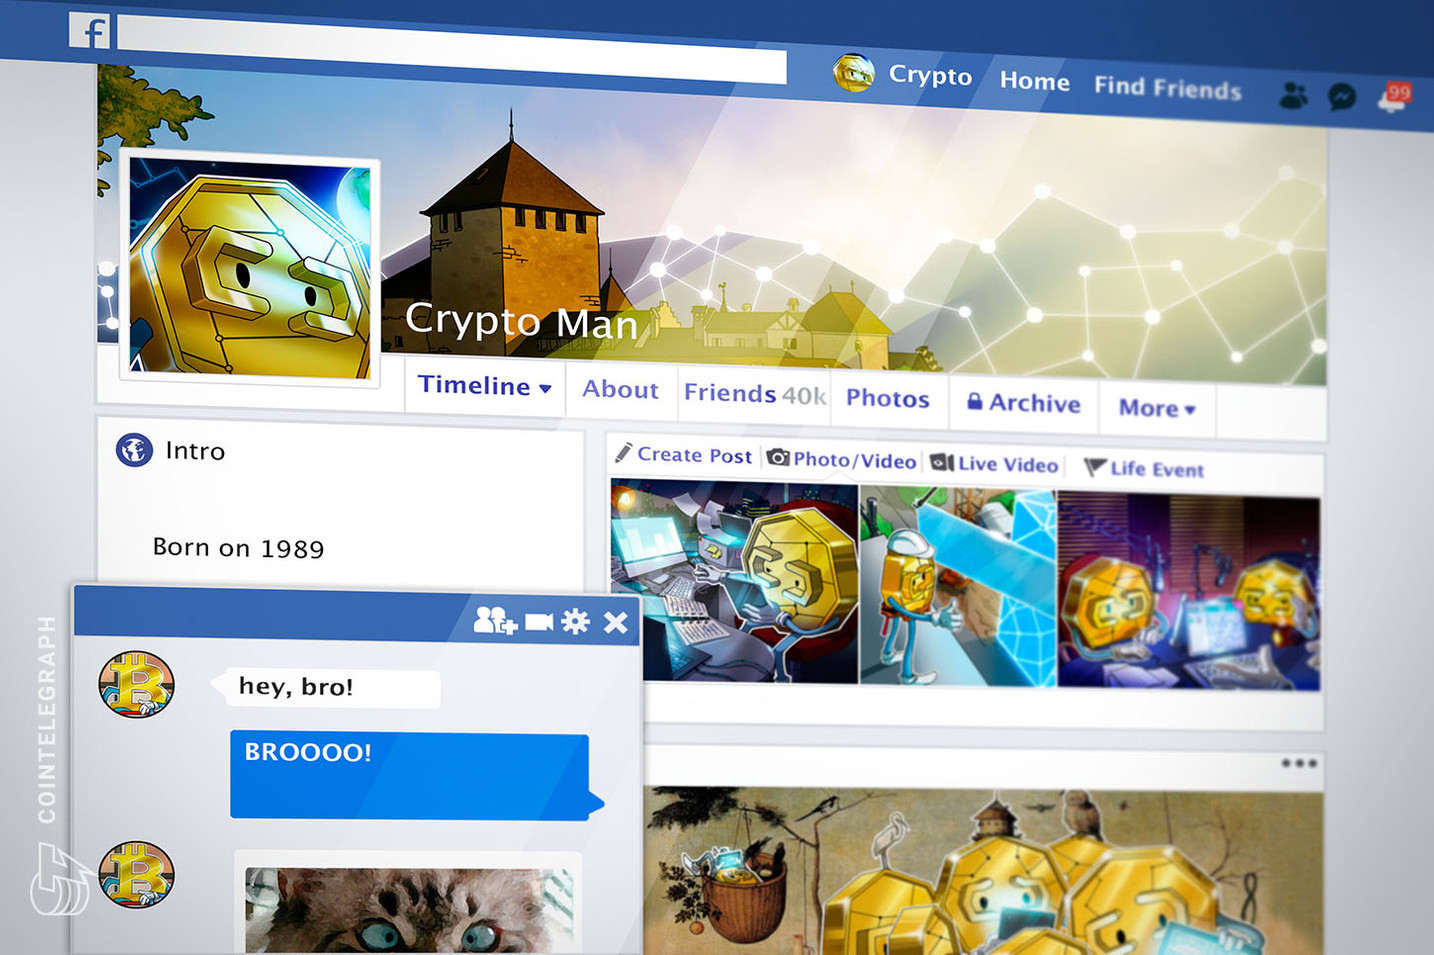 From Blanket Ban to Its Own Stablecoin: How Facebook's Relationship With Crypto Changed Over 2018